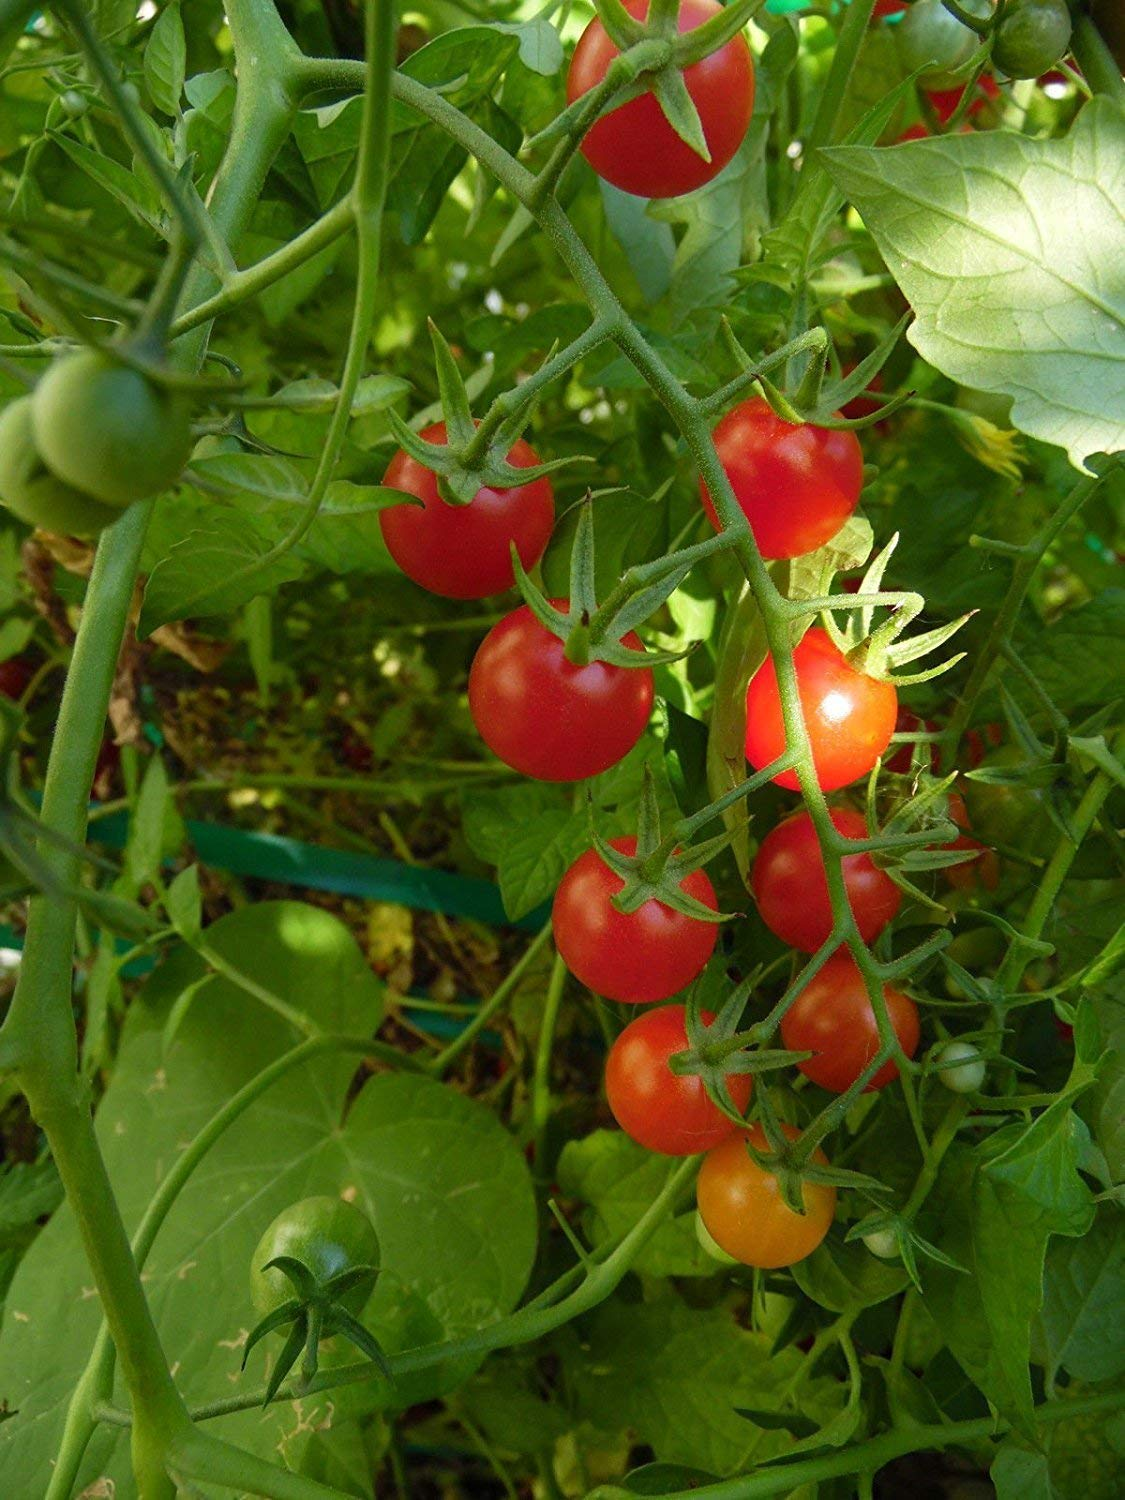 Glamouras Sweetie Tomato Seeds! Super Sweet with Loads of Fruit! Comb. S/H See Our Store